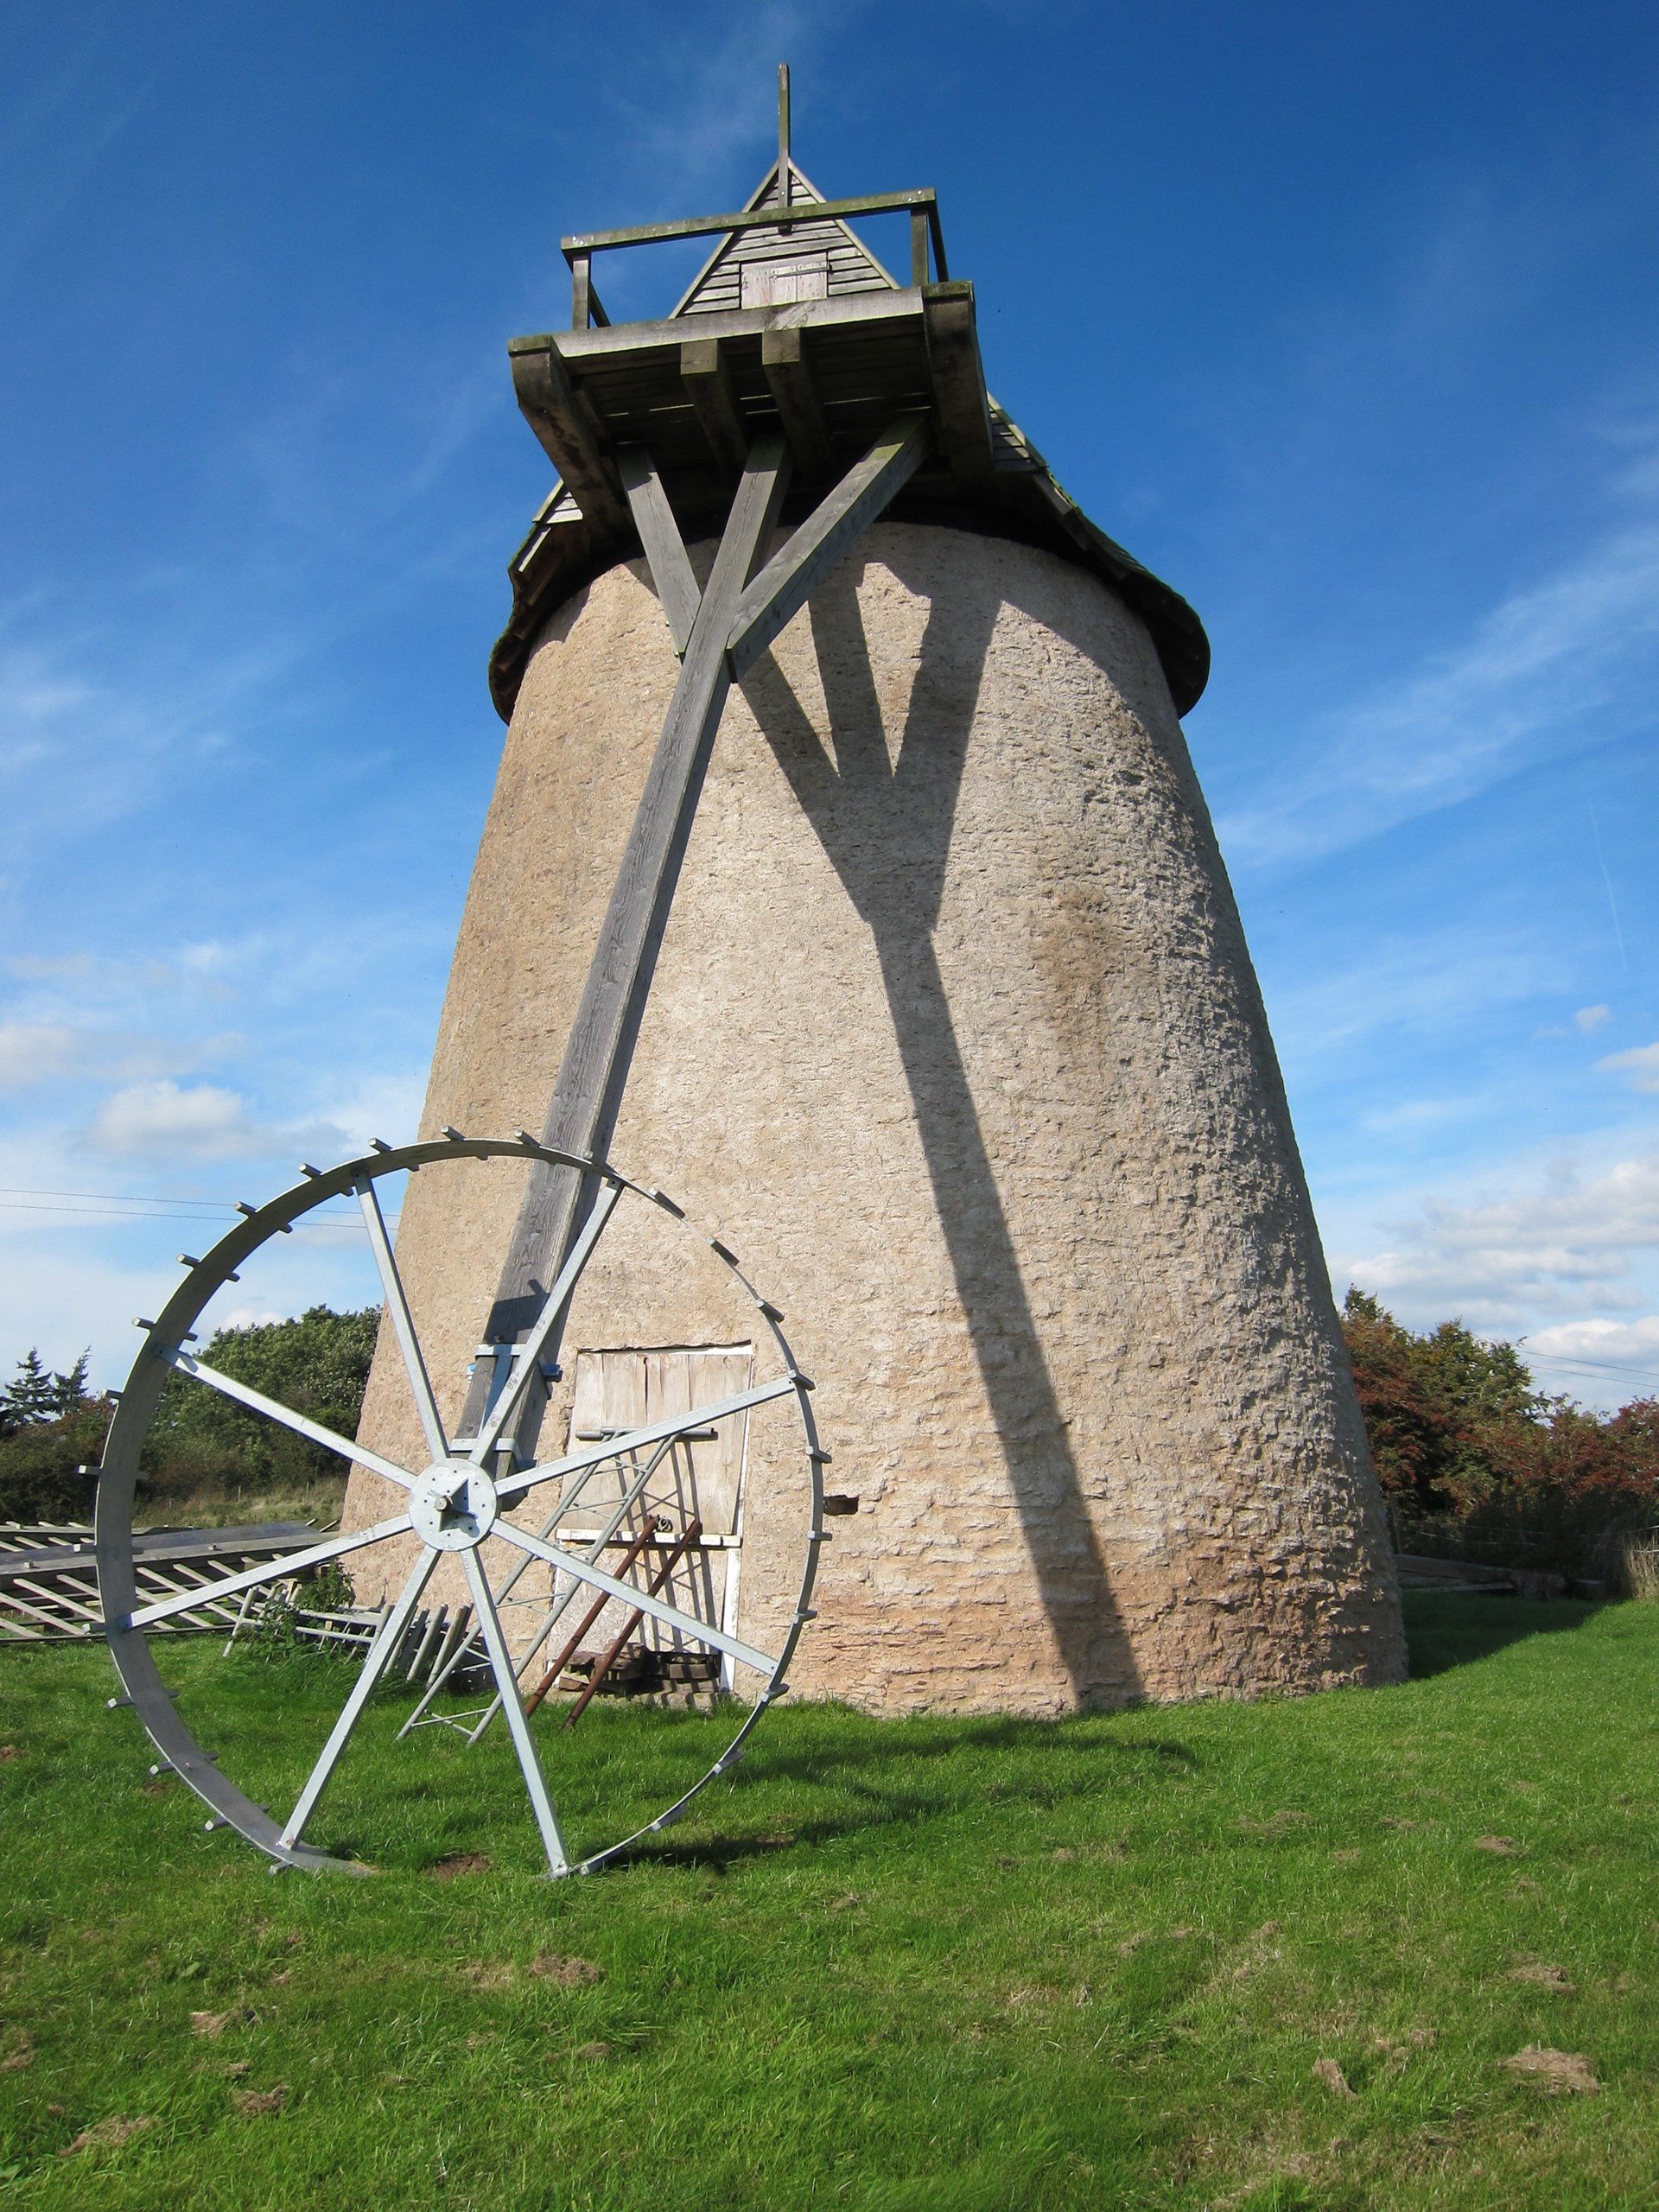 The Windmill at Rowton